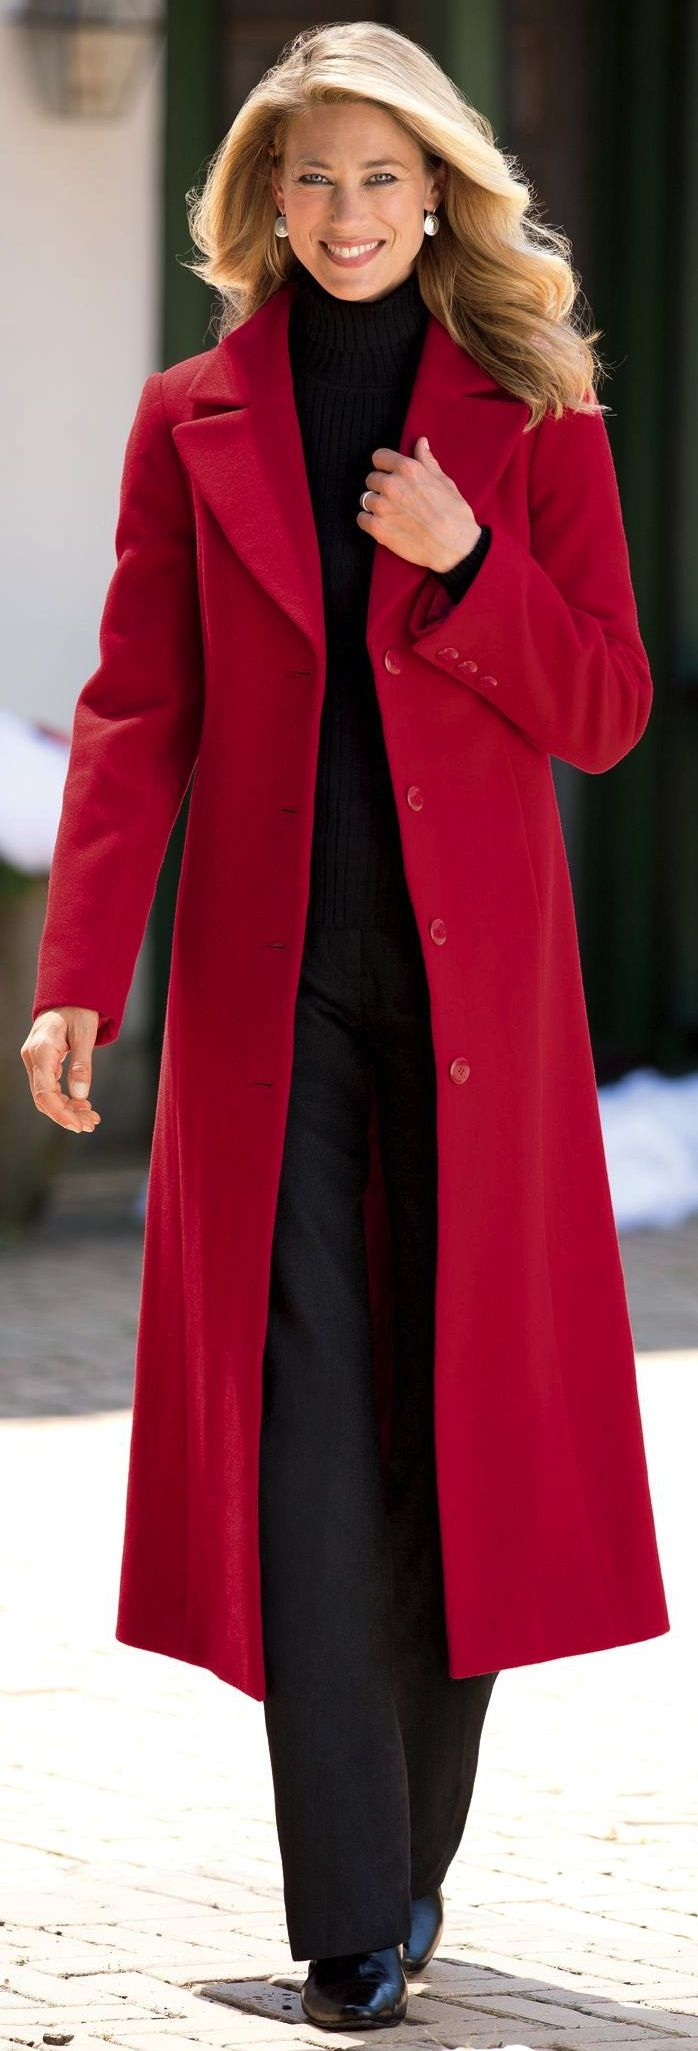 Red Long Jacket